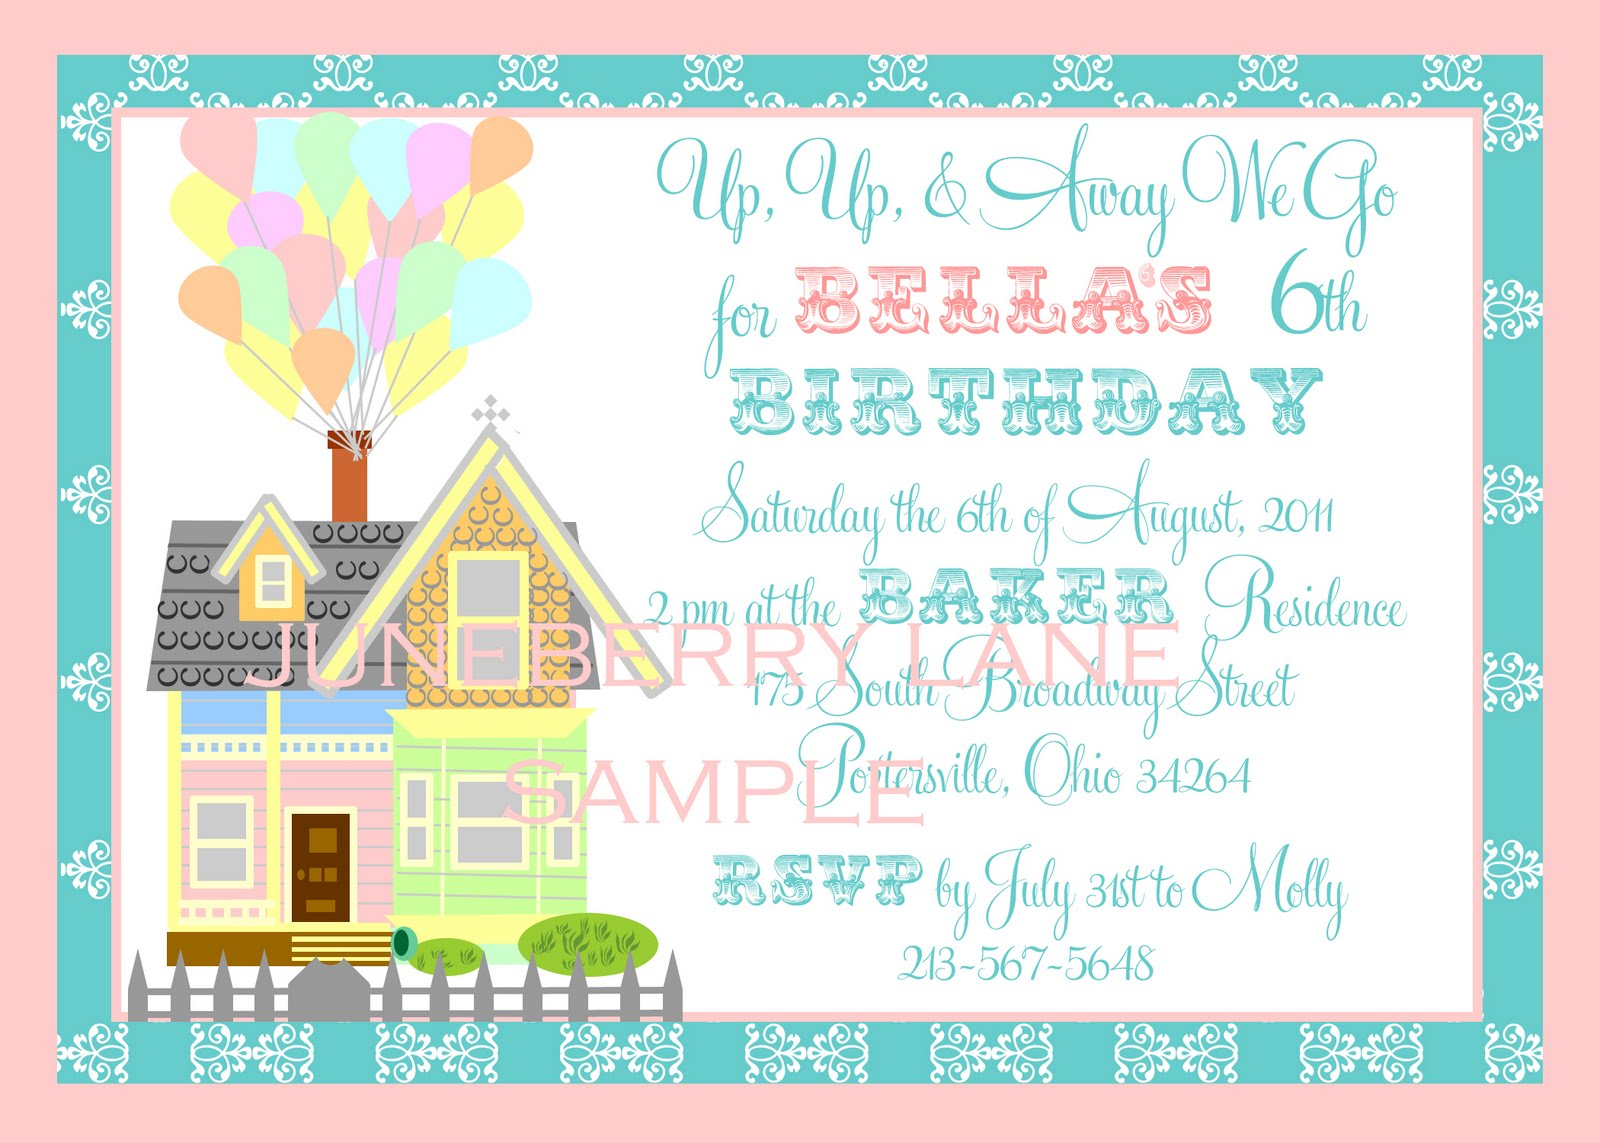 Up Themed Wedding Invitations: Juneberry Lane: A New Line Of 'Up' Invitations & Labels